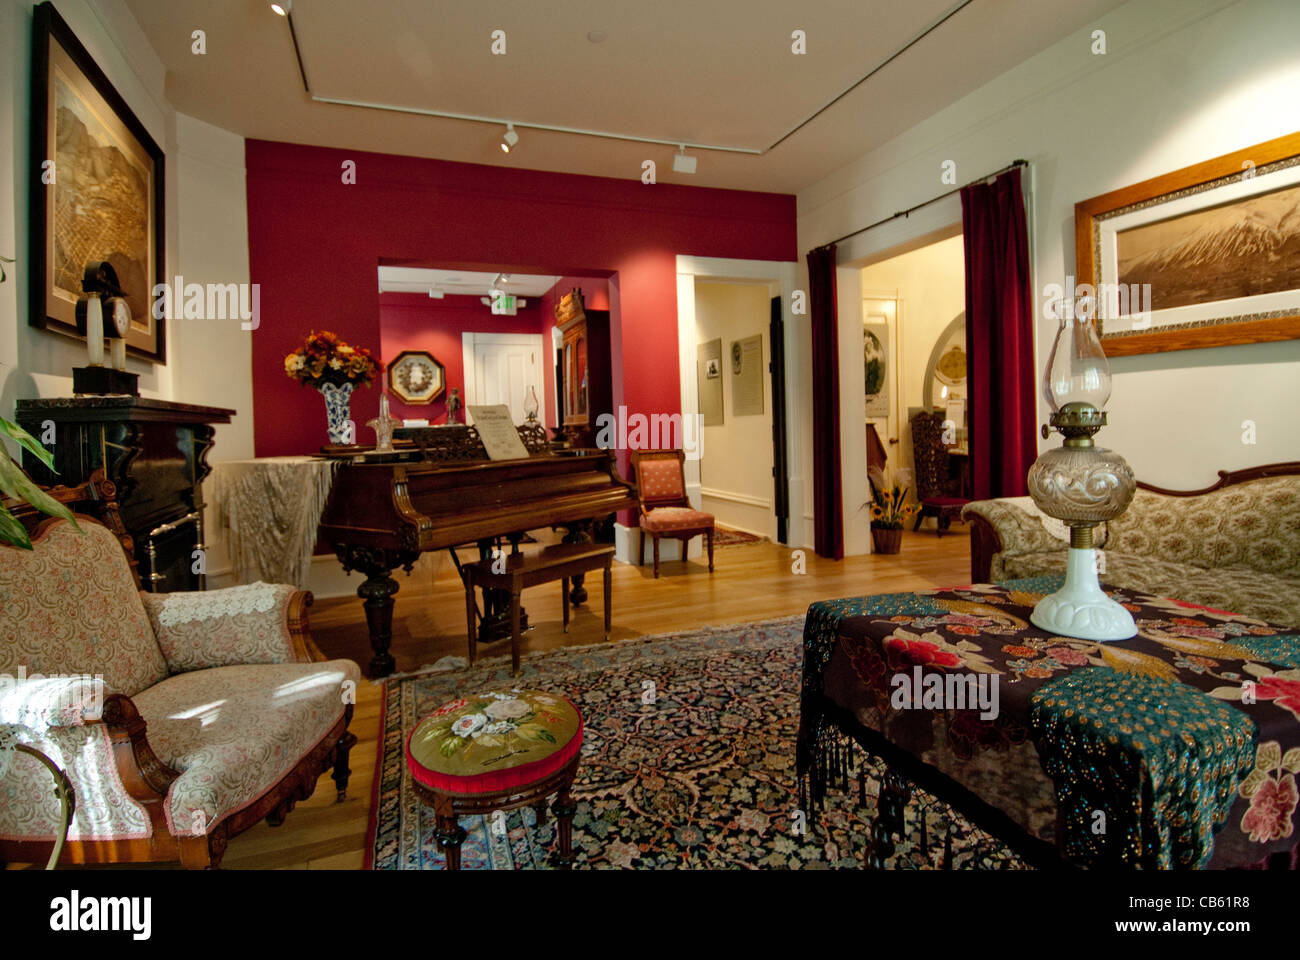 Queen Anne Style Living Room Furniture Queen Anne Room Stock Photos Queen Anne Room Stock Images Alamy